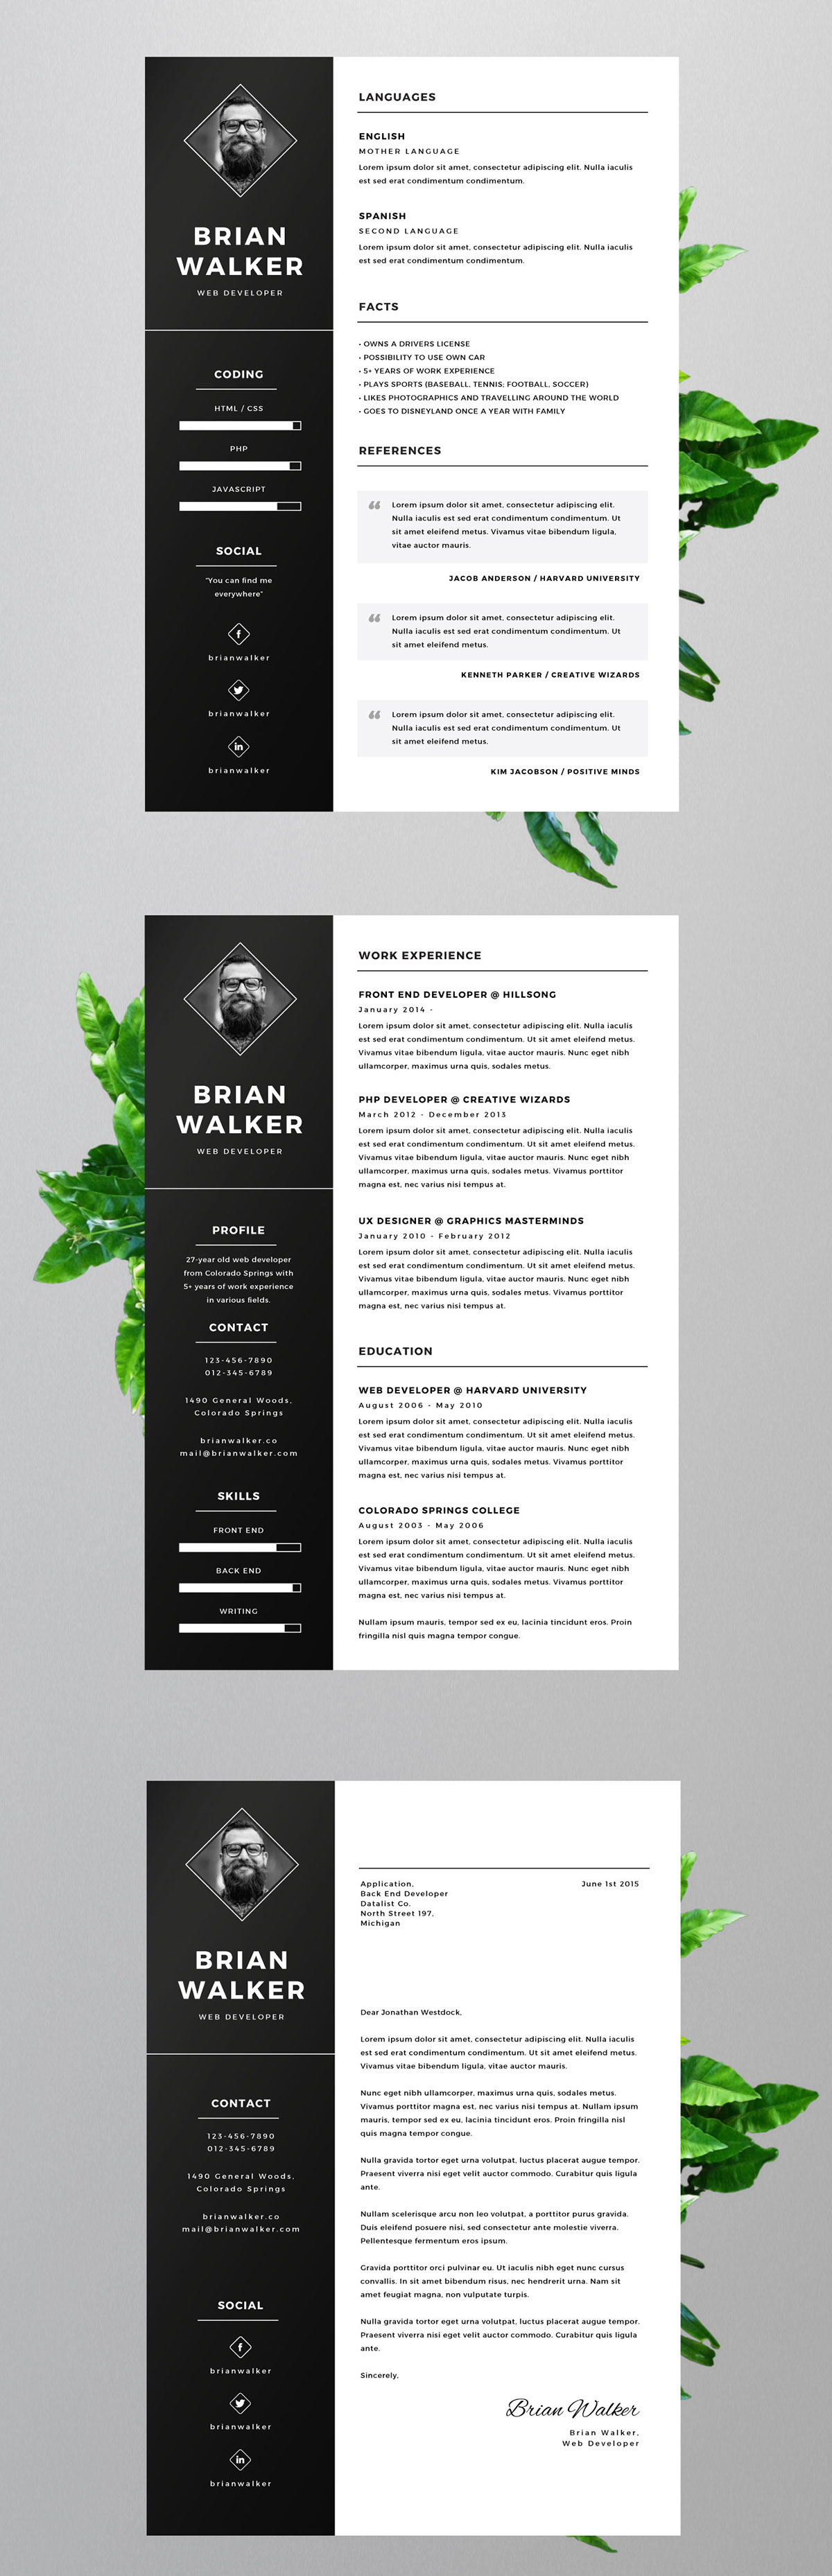 Resume Templates Illustrator Free Resume Template For Word Photoshop And Illustrator On